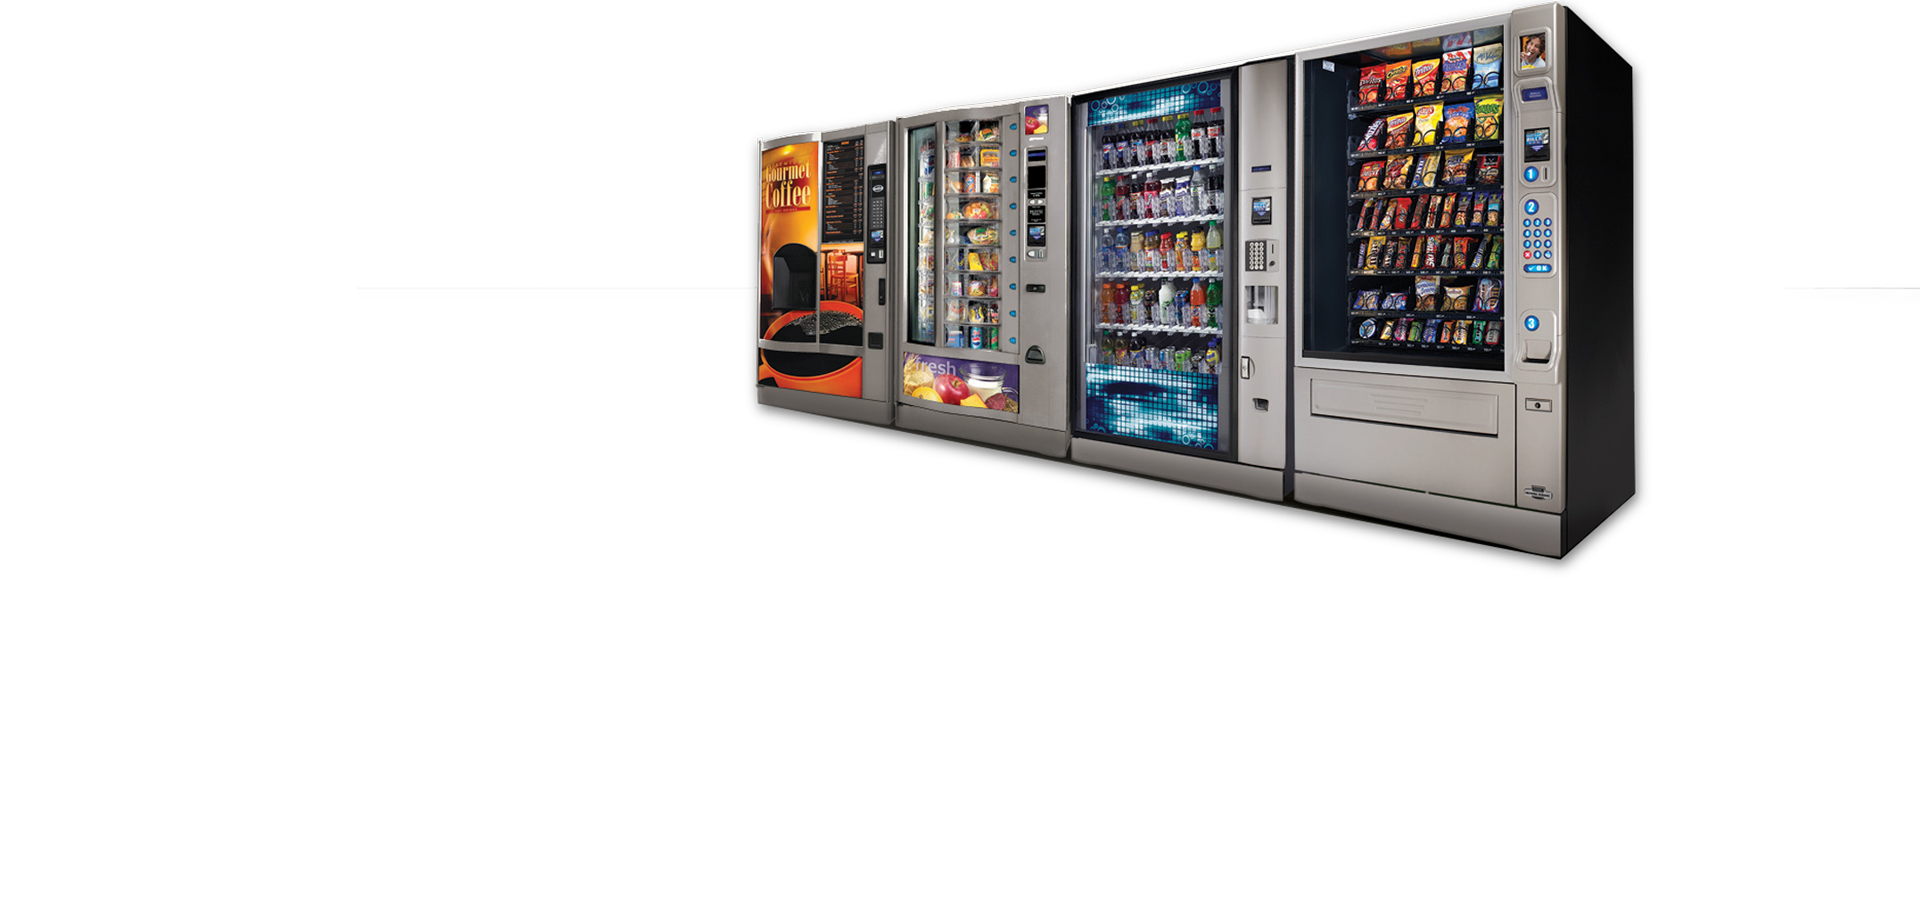 Snack and soda vending machines